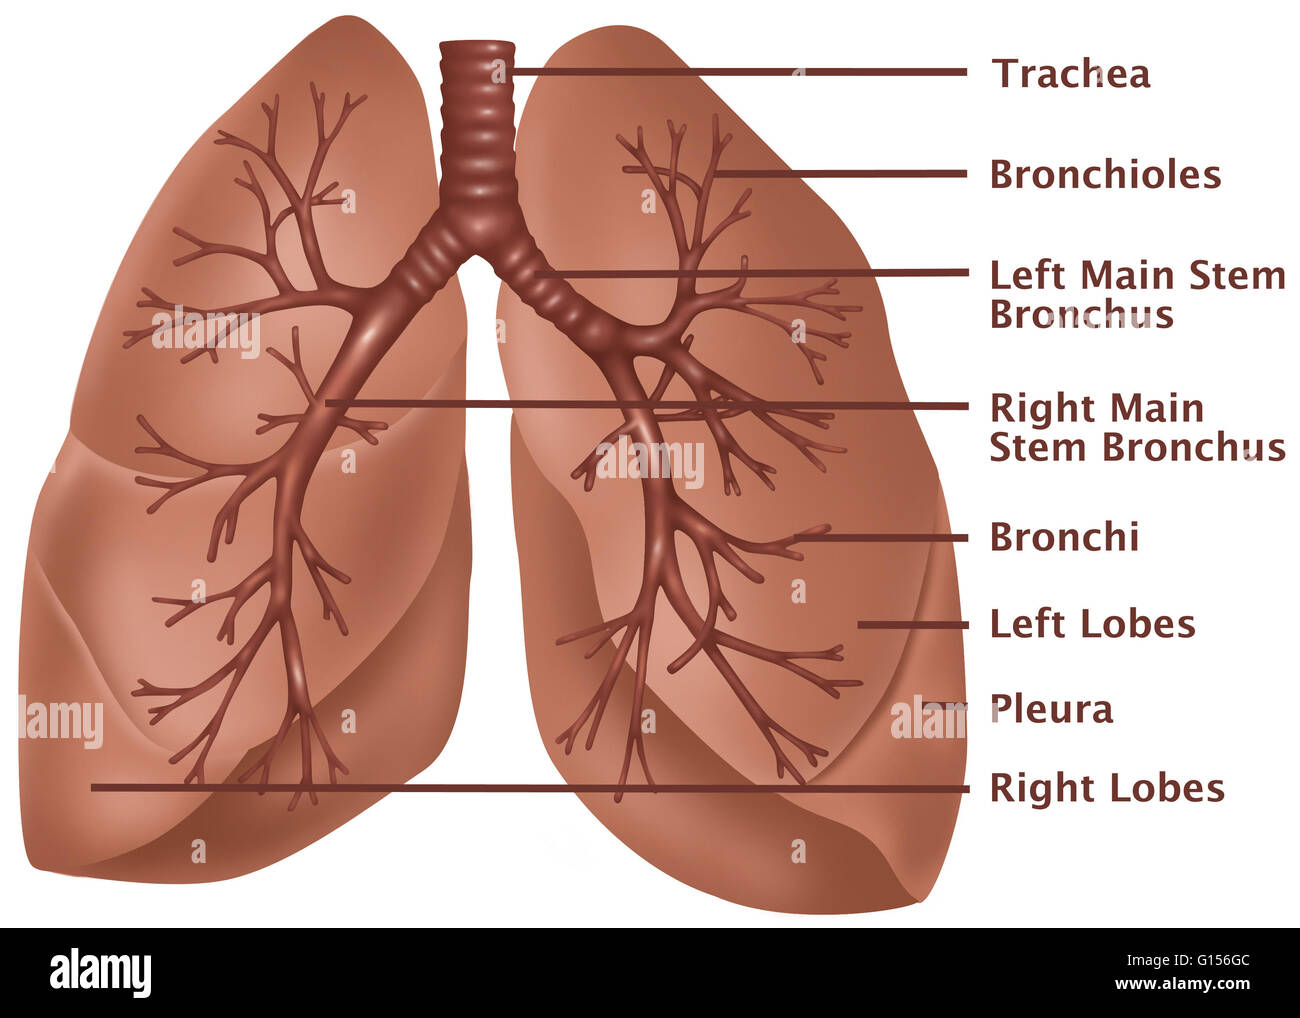 Anatomical Illustration Of The Lungs With Top To Bottom The Stock